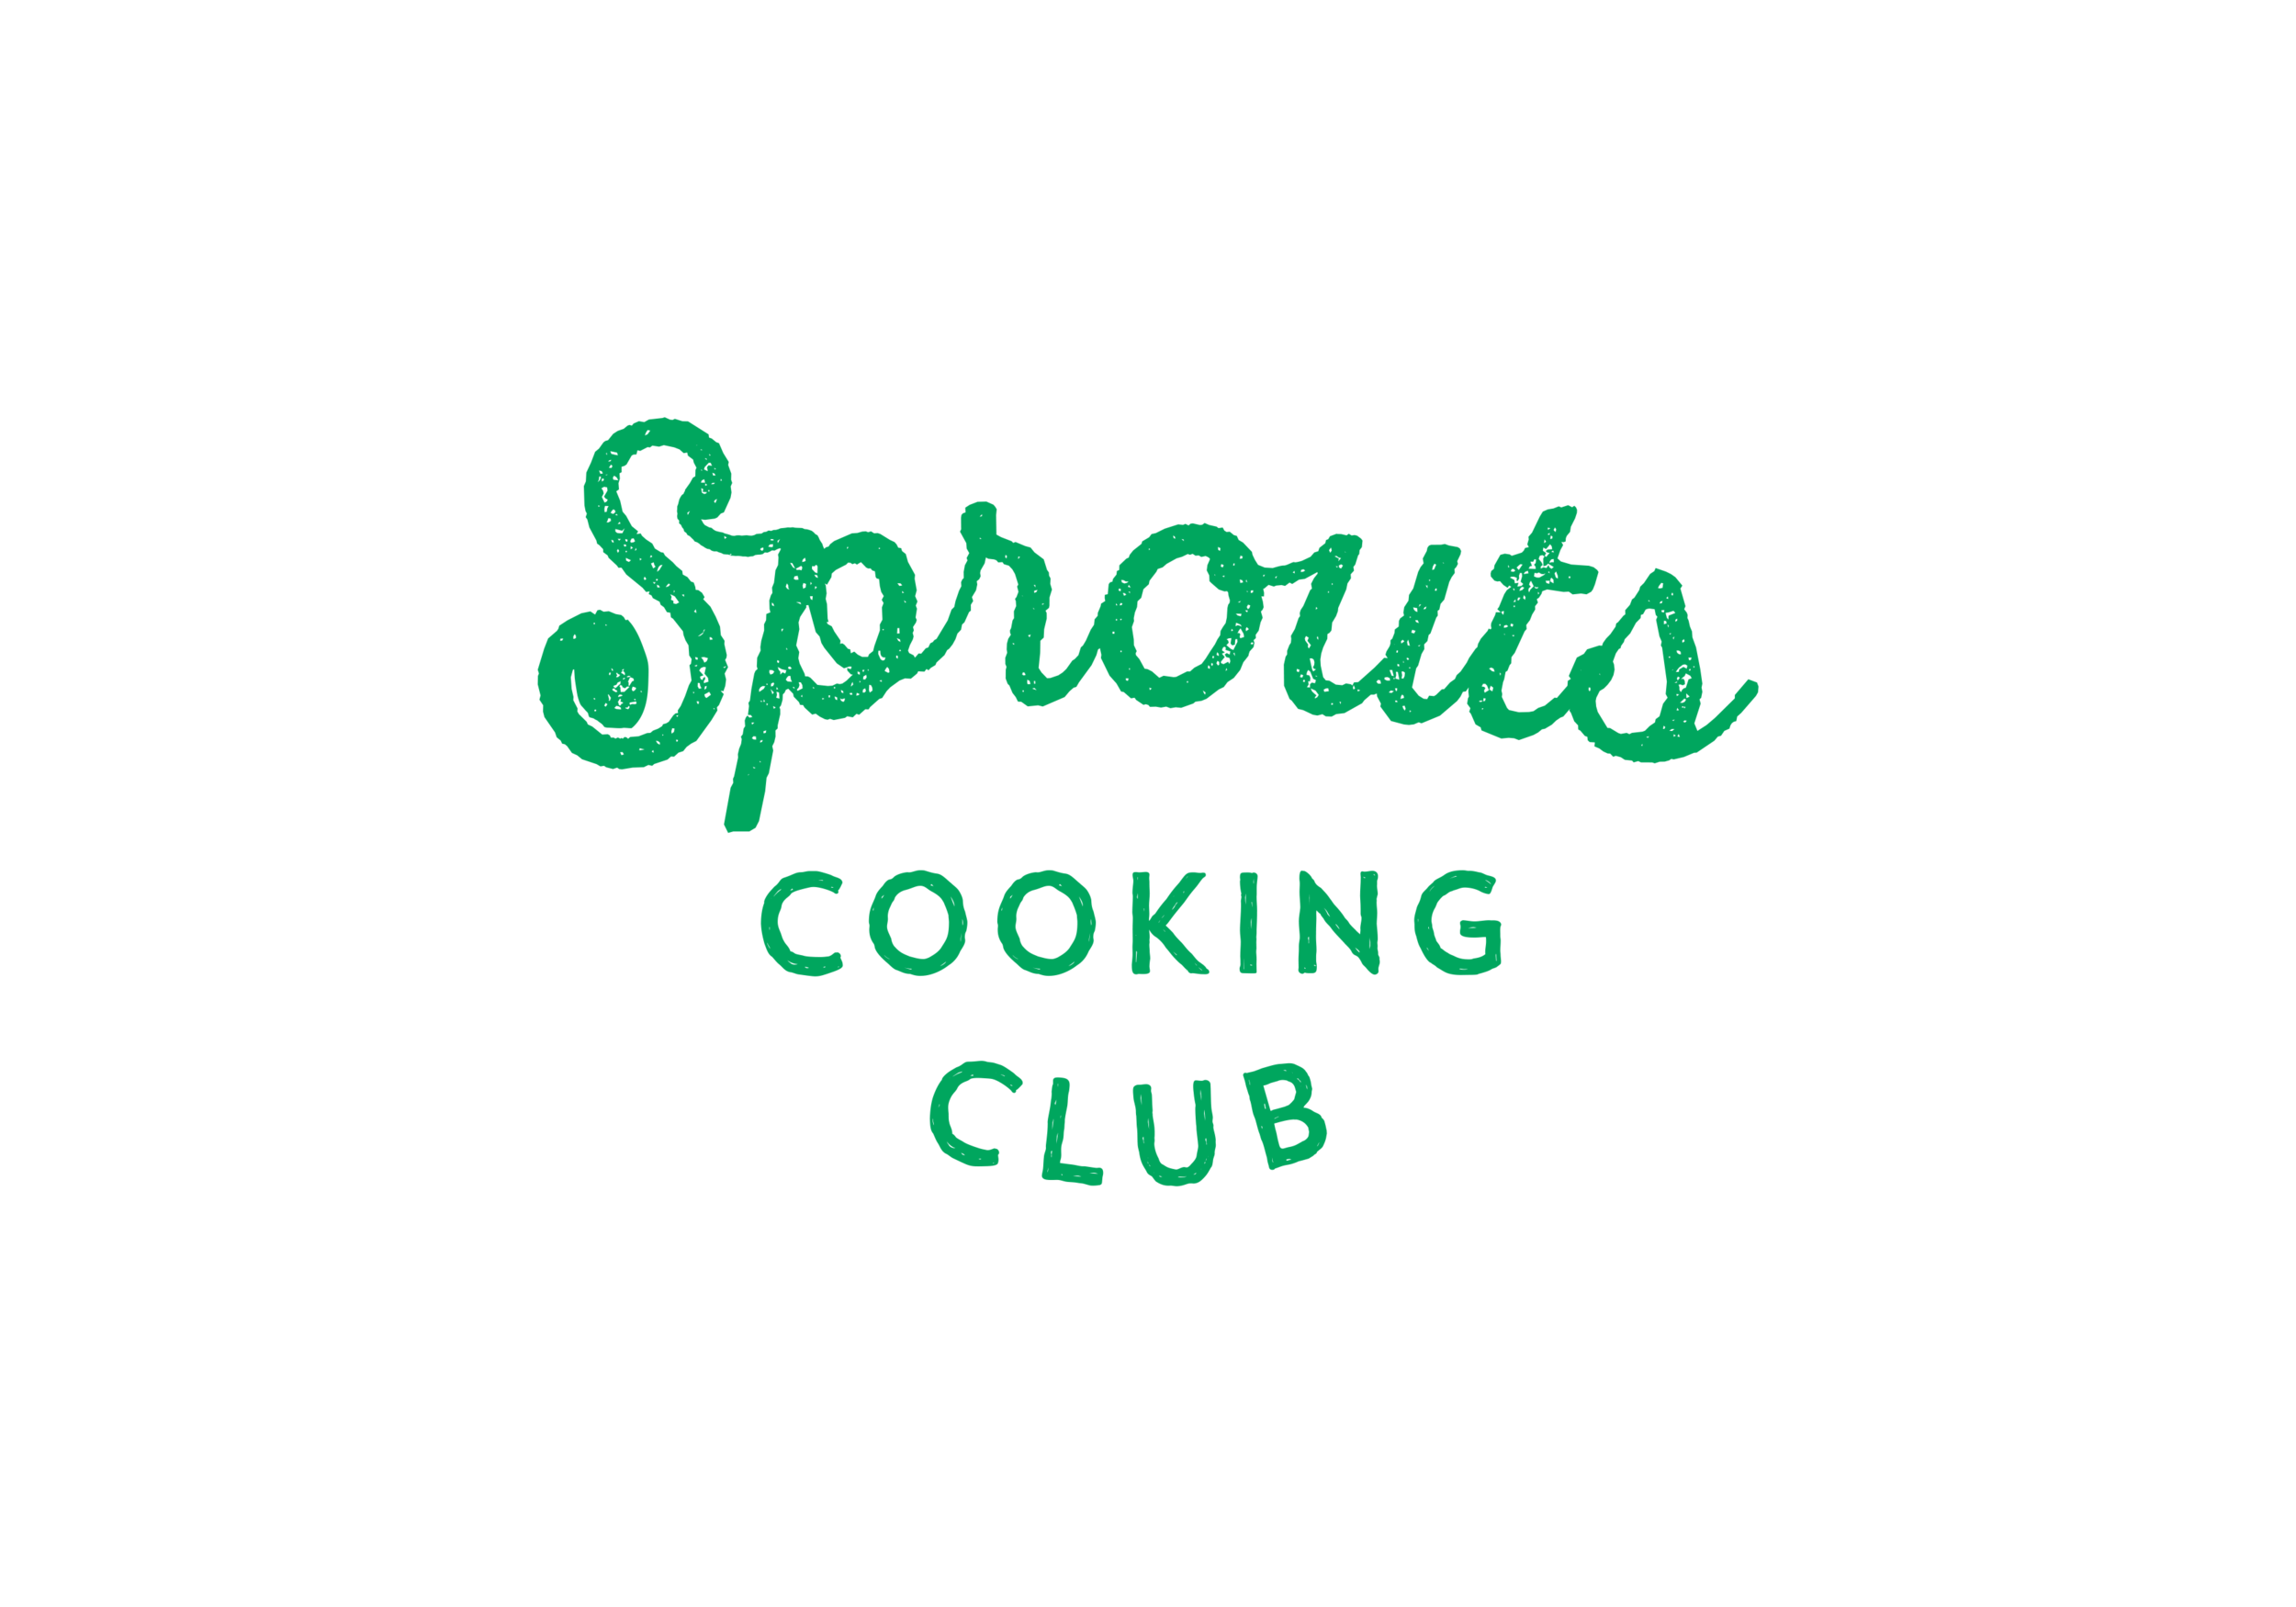 Sprouts Cooking Club